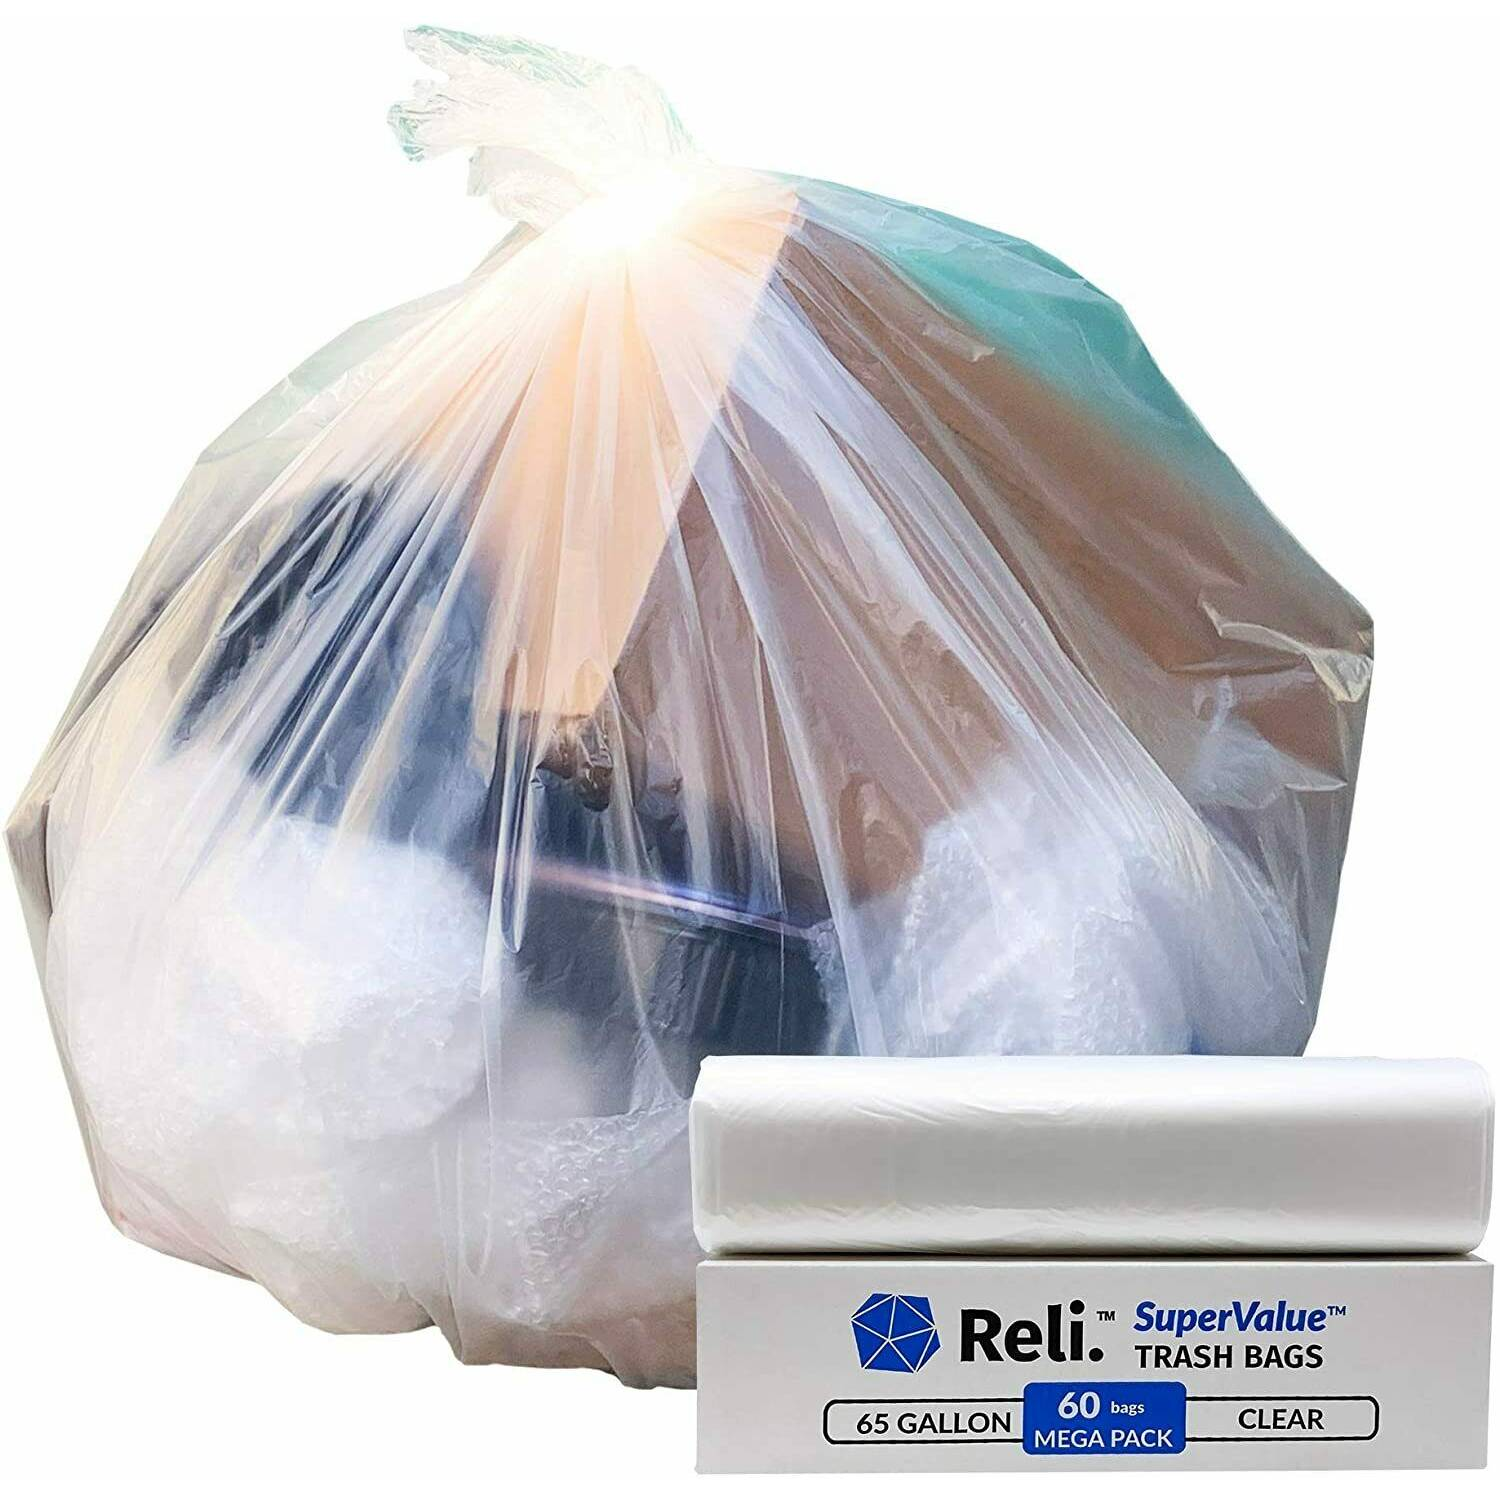 SuperValue 65 Gallon Trash Bags Clear Garbage Bags 65 Gal (60 Count)